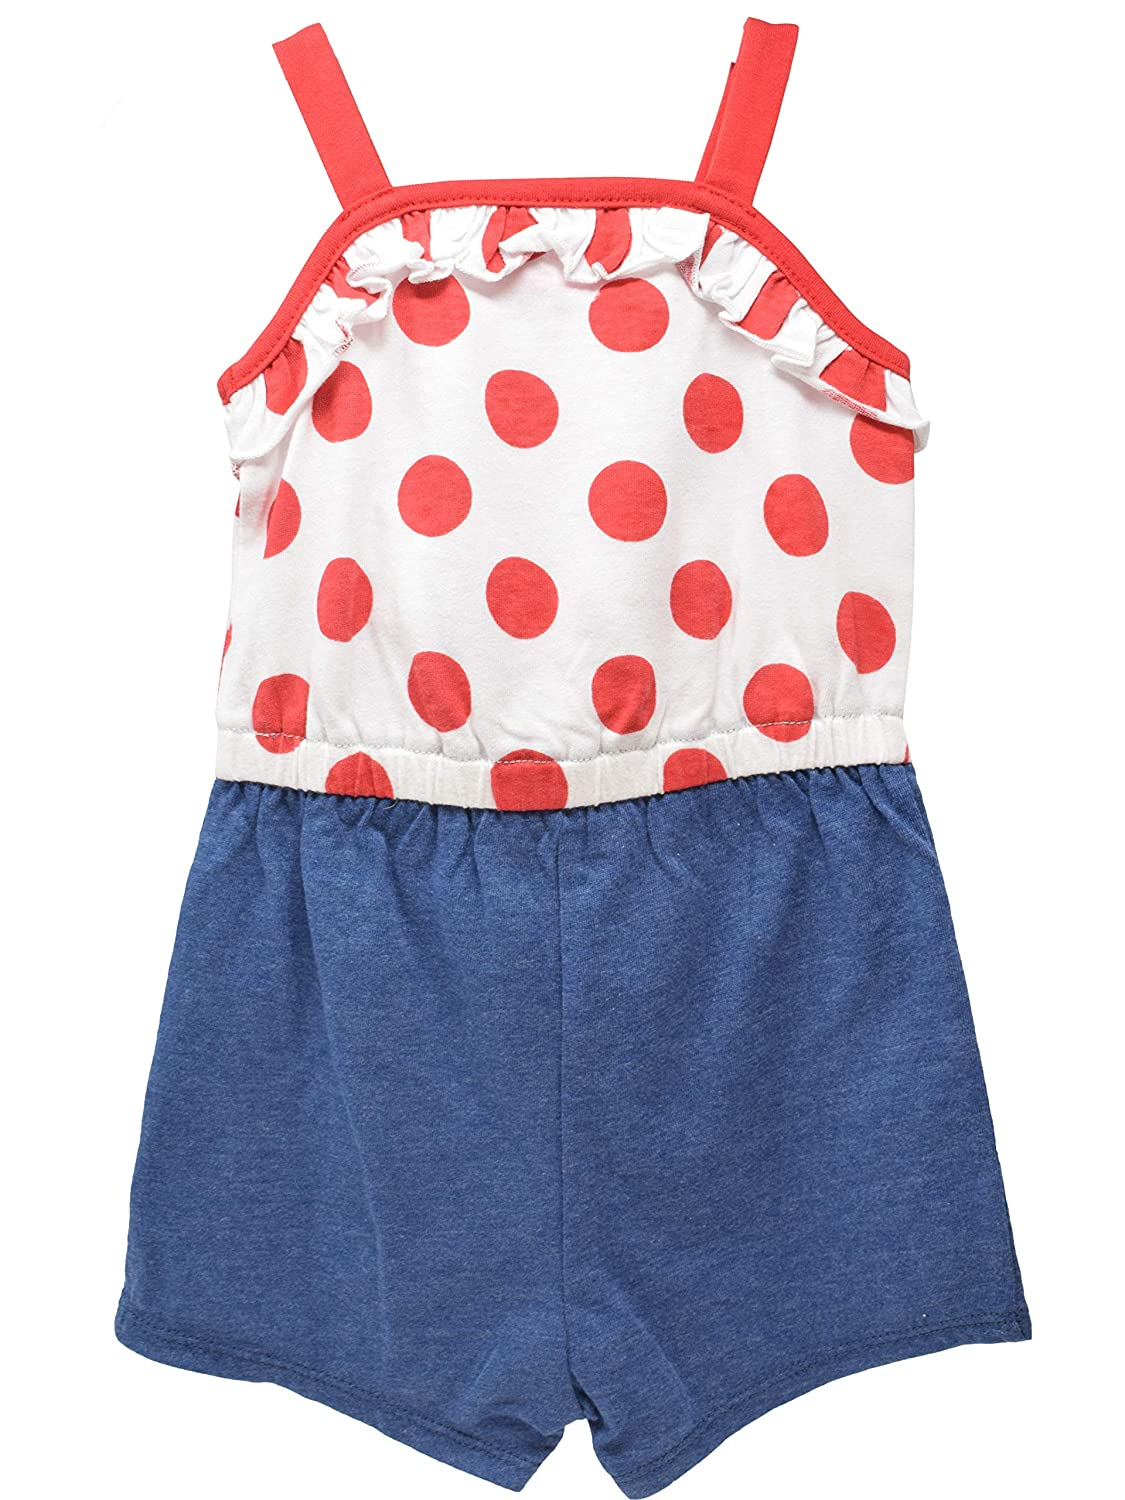 Disney Minnie Mouse Girls Overalls Ruffle Shirt Denim Shorts Romper Outfit